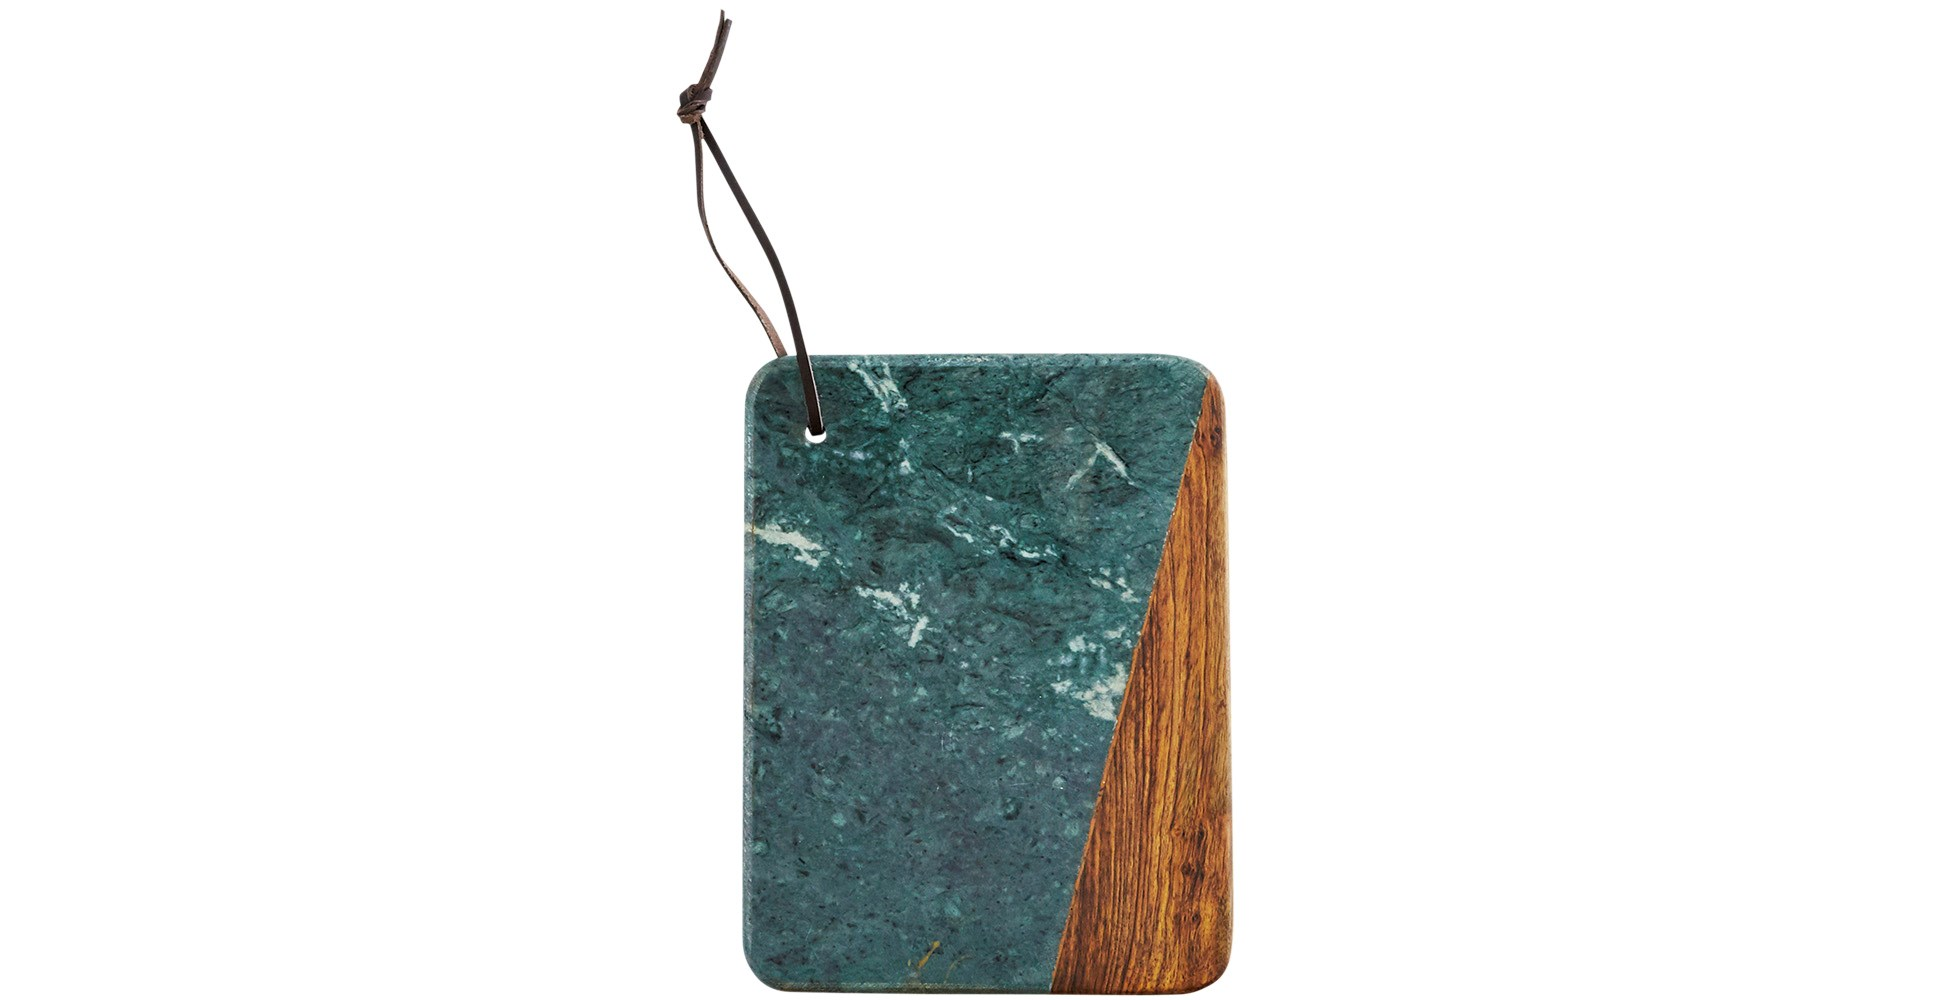 mable and wood chopping board